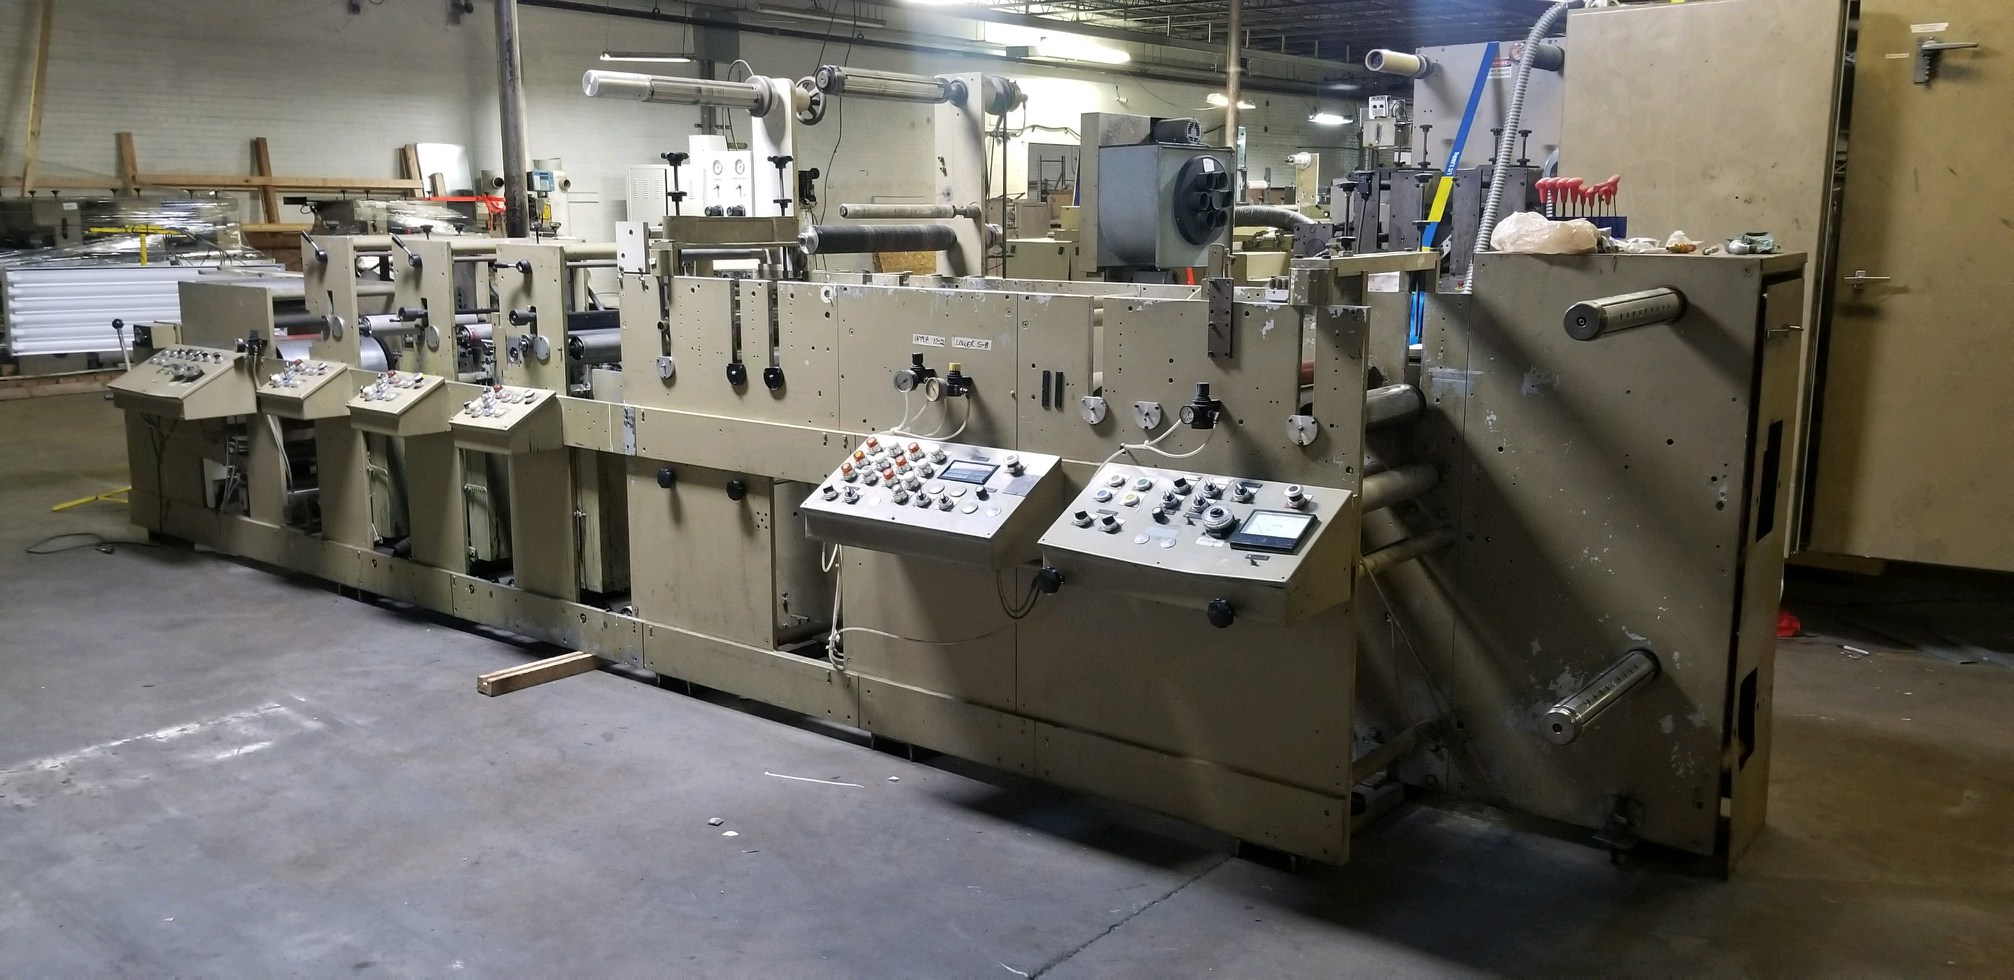 Mark Andy 4120 - Used Flexo Printing Presses and Used Flexographic Equipment-3